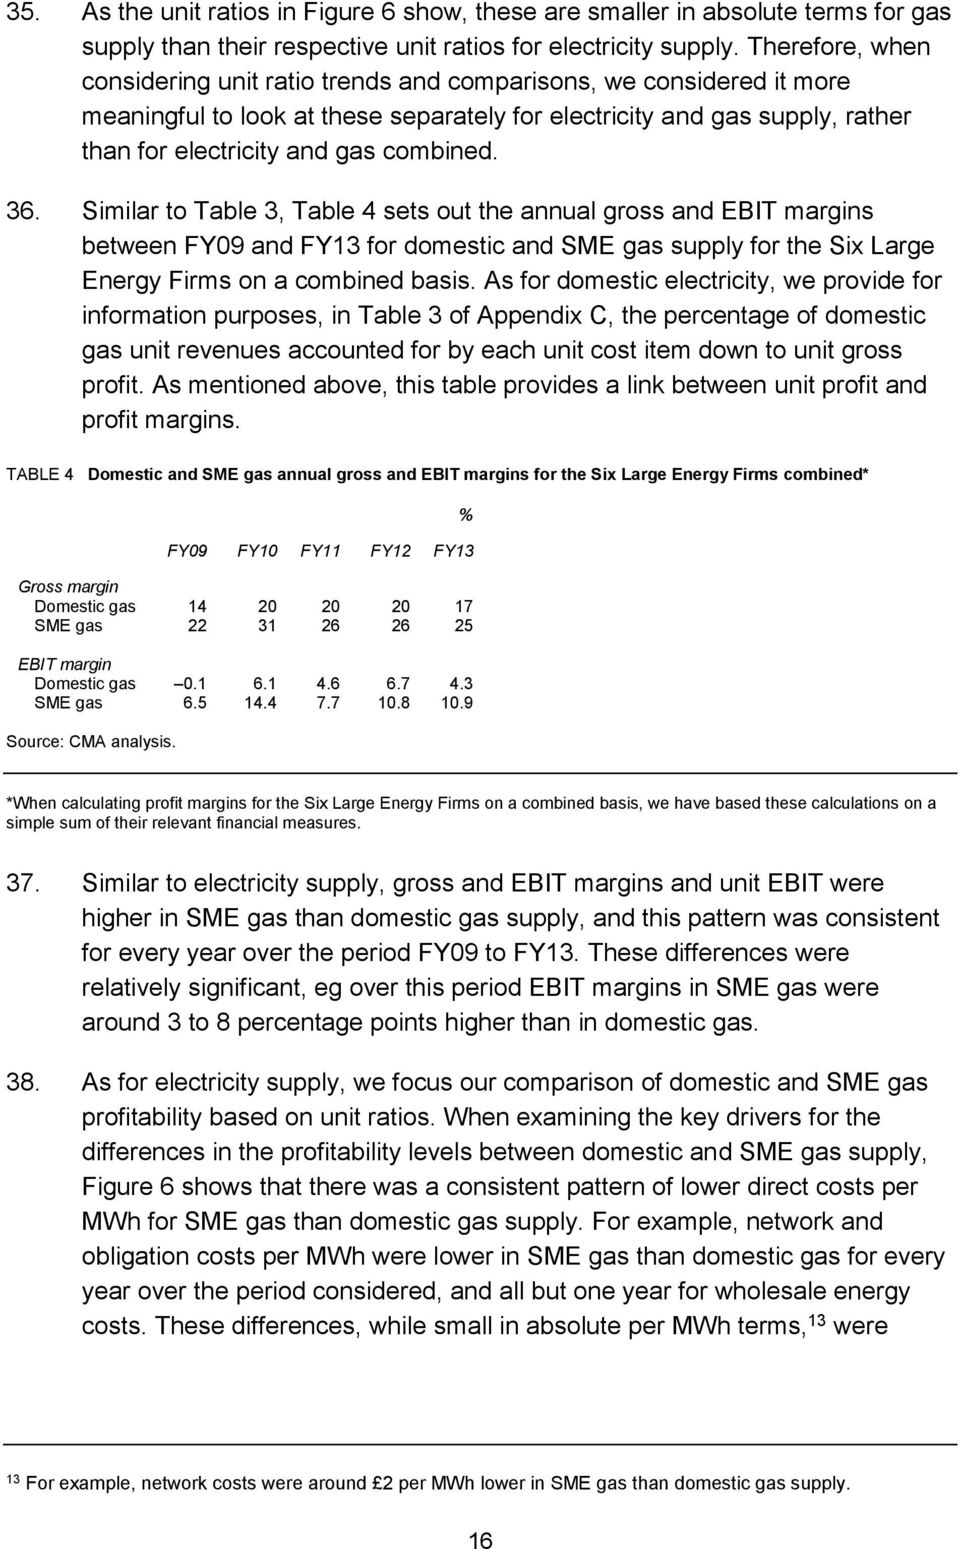 combined. 36. Similar to Table 3, Table 4 sets out the annual gross and EBIT margins between FY09 and FY13 for domestic and SME gas supply for the Six Large Energy Firms on a combined basis.